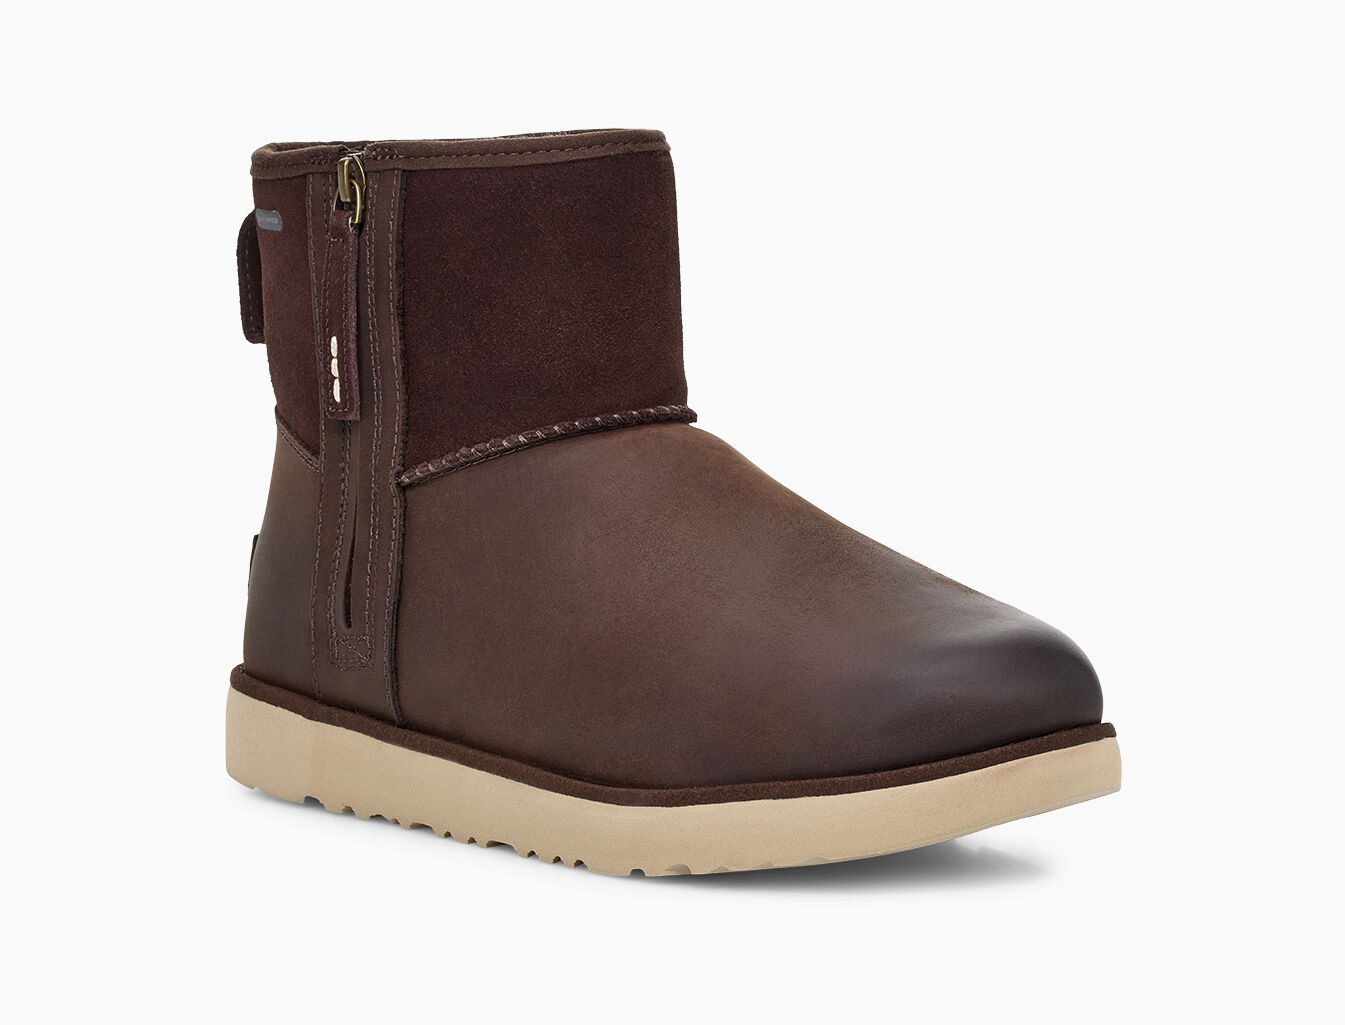 UGG® Classic Mini Zip Waterproof Laarzen voor Heren | UGG® NL